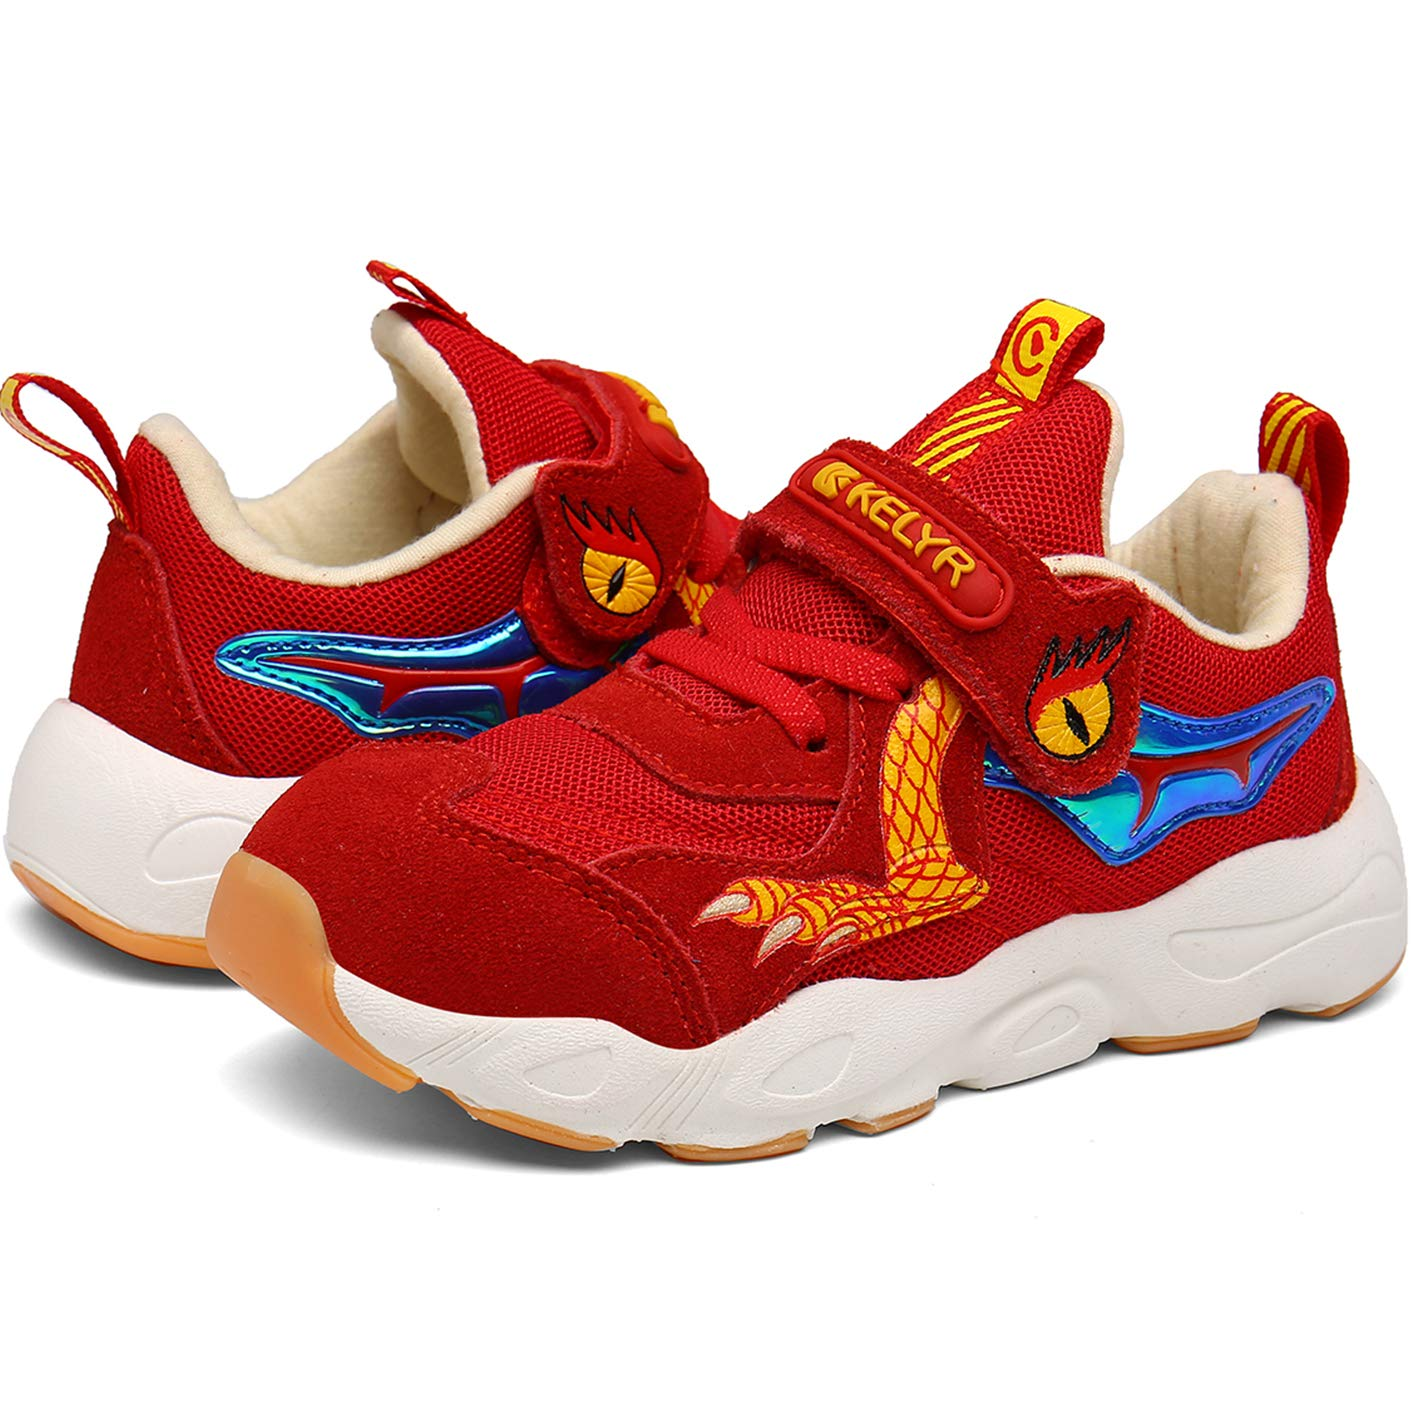 KELYR Kids Running Shoes Boys Tennis Sneakers for Athletic Outdoor Rubber-Sole Slip Resistant Red